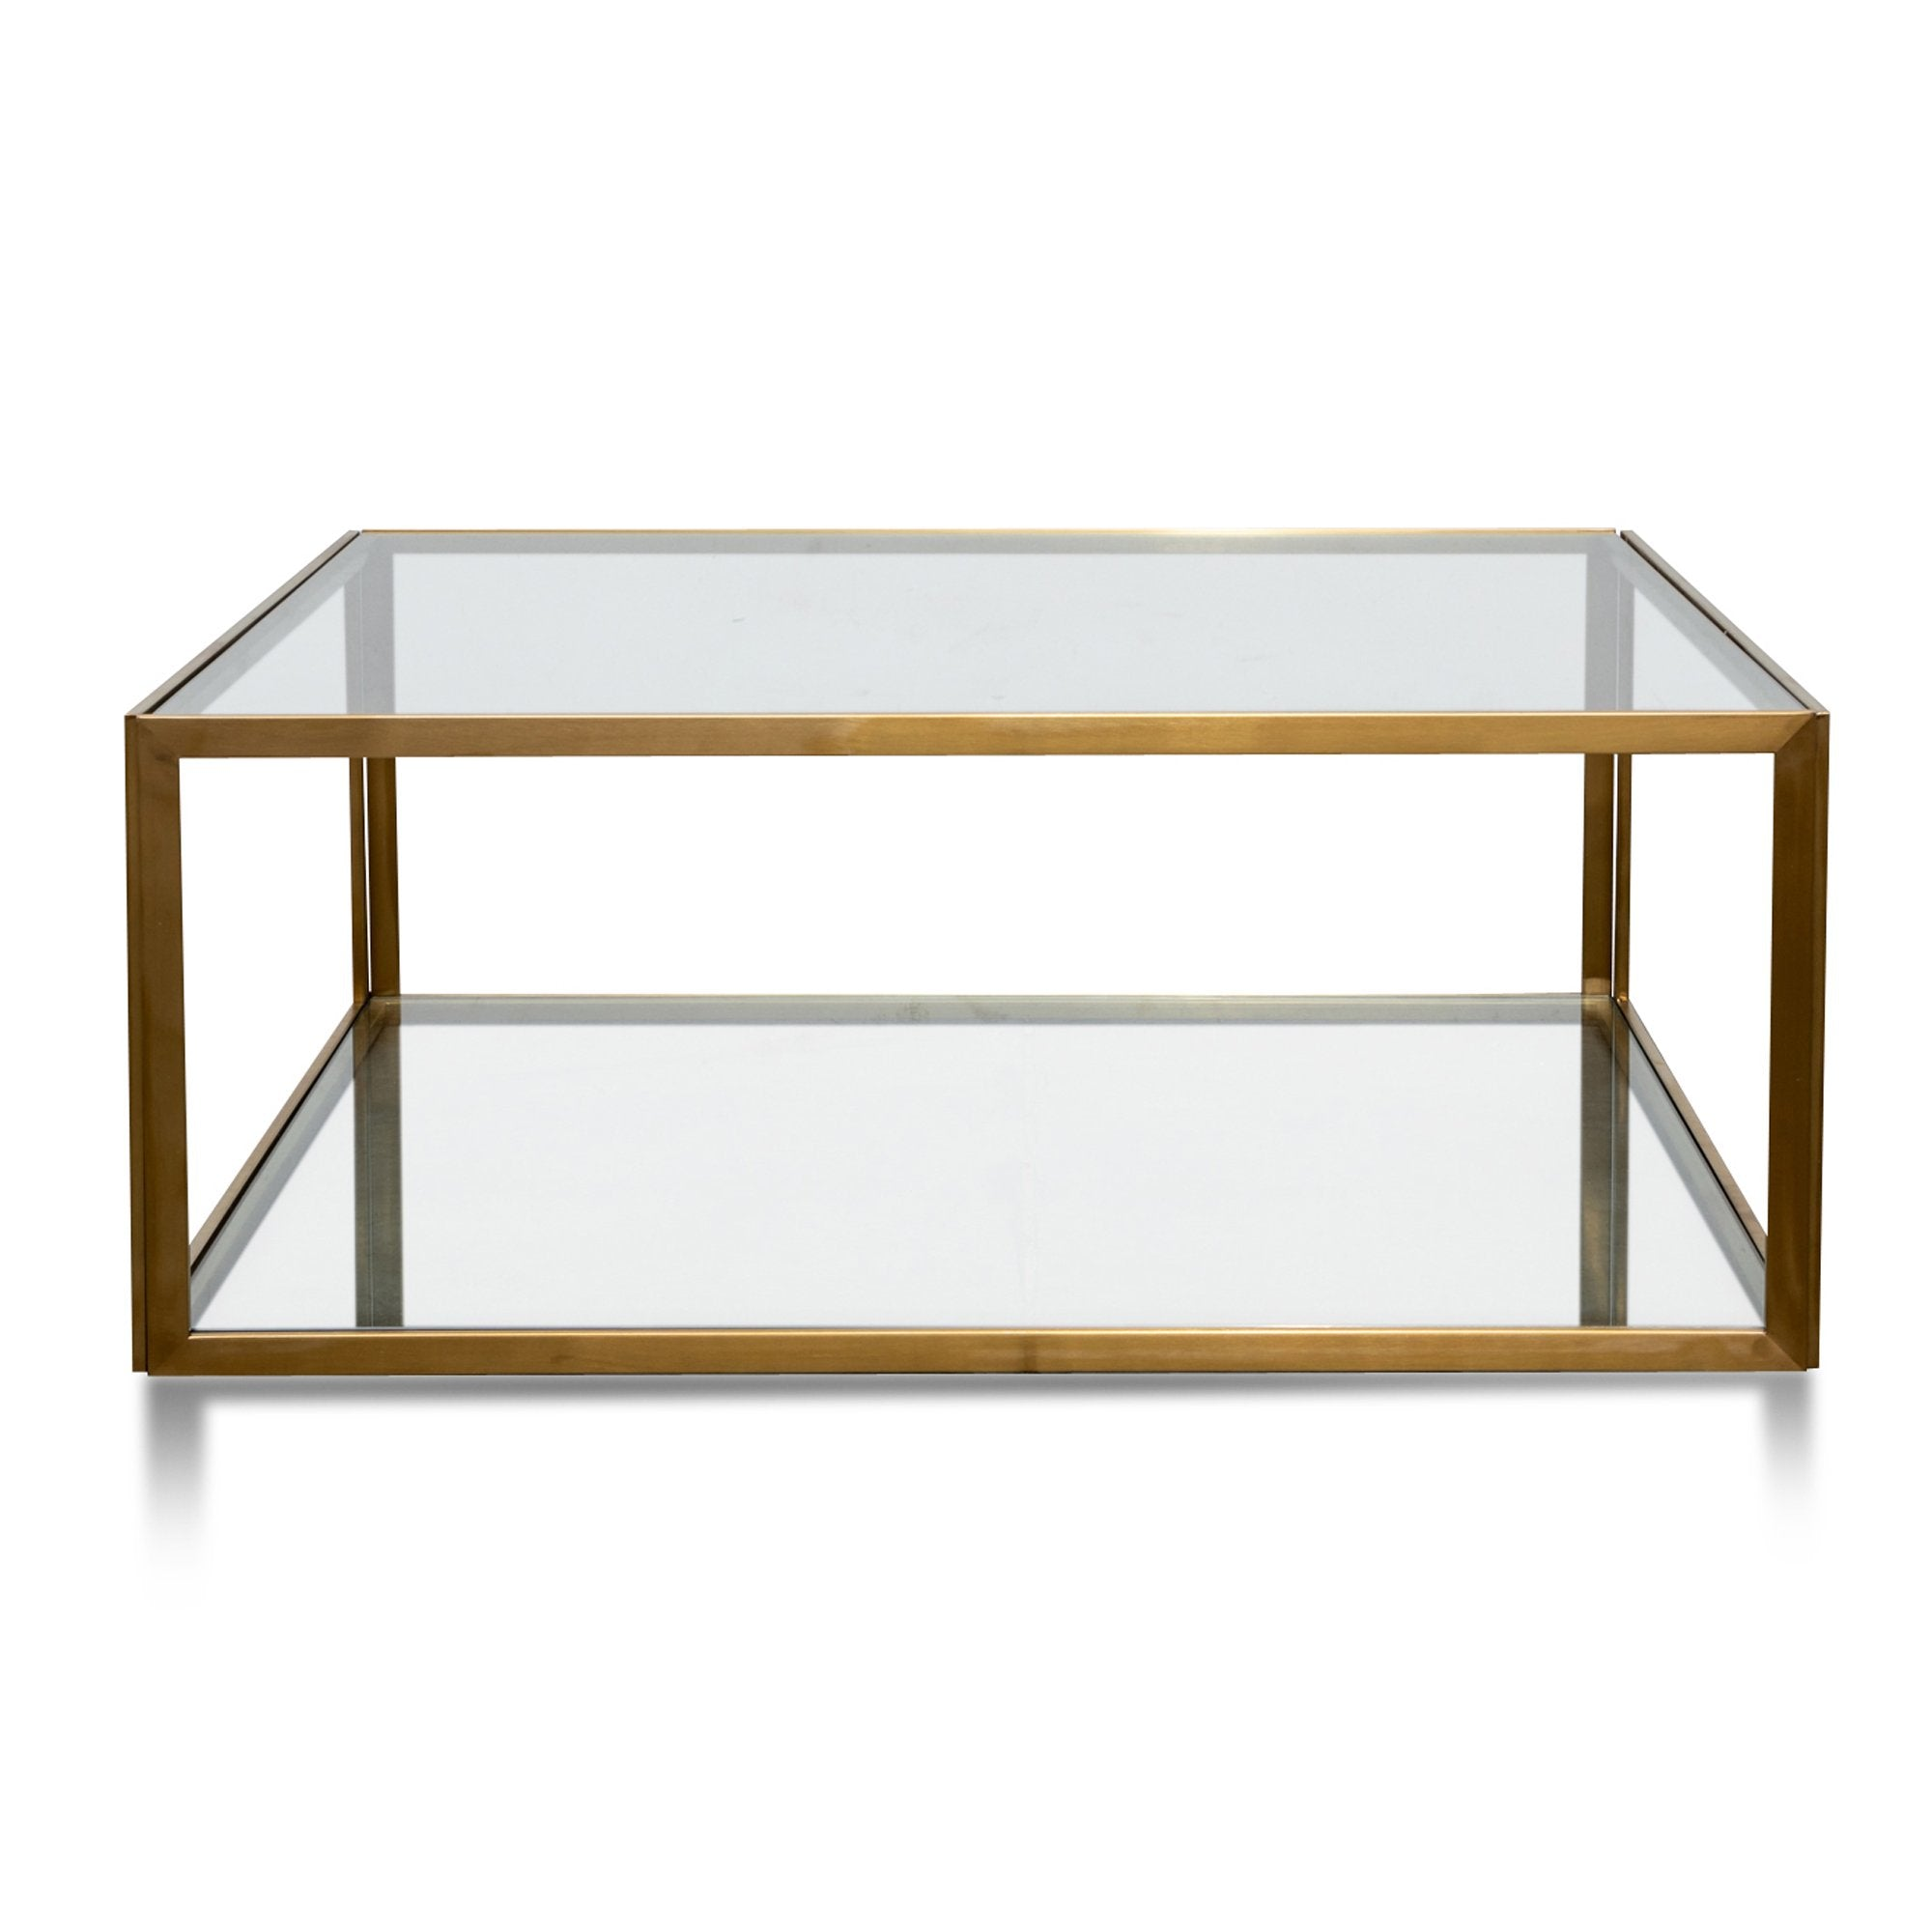 Melody 1m Square Glass Coffee Table Gold Base Interior Secrets [ 2000 x 2000 Pixel ]